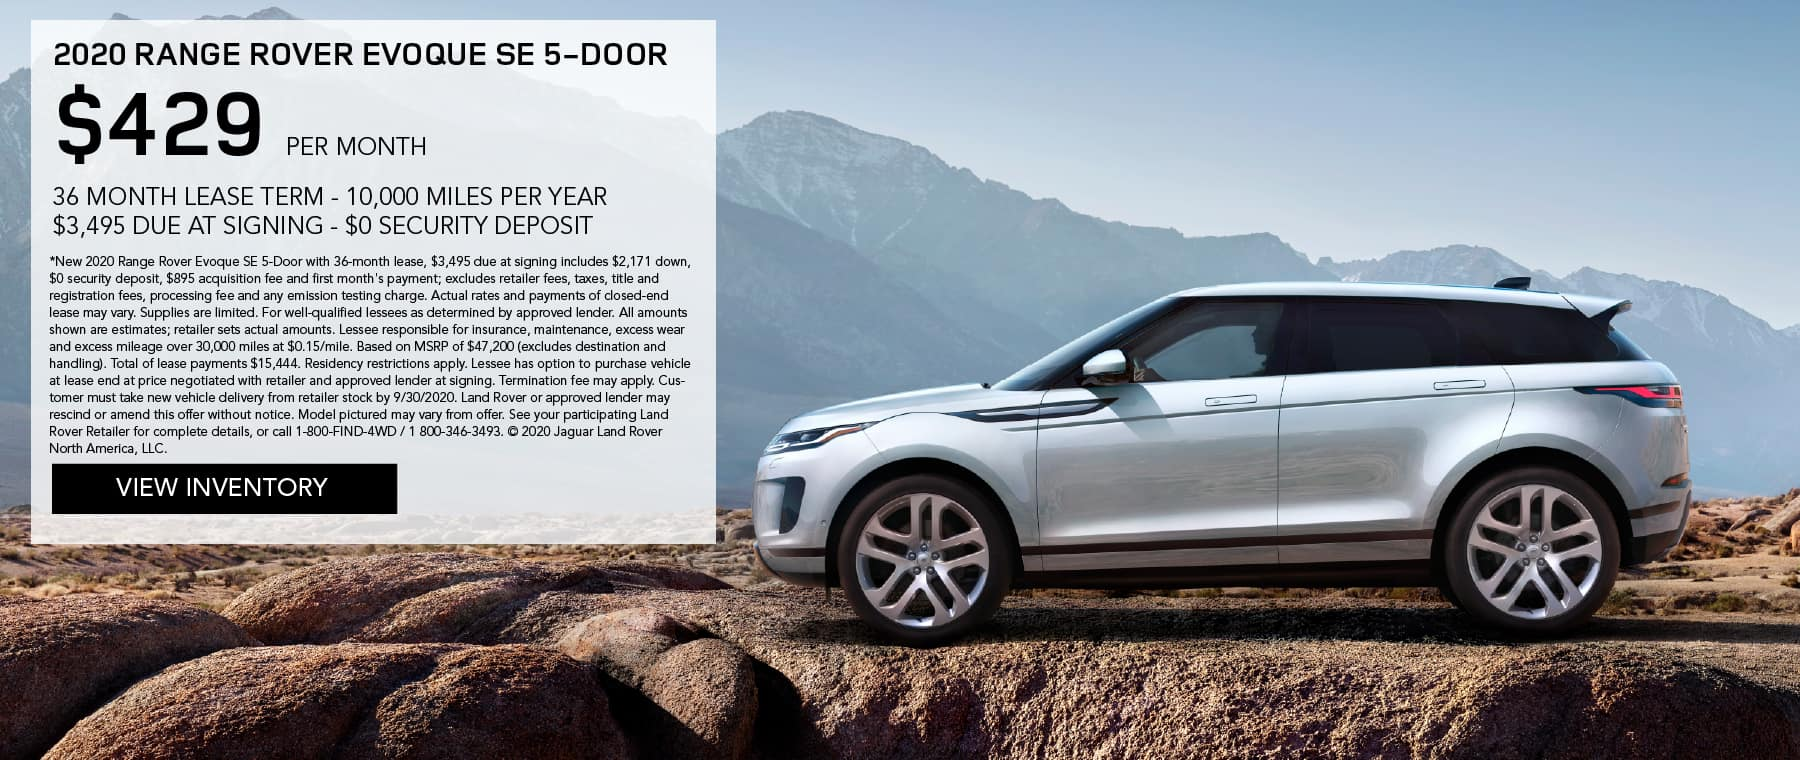 2020 RANGE ROVER EVOQUE SE 5-DOOR. $429 PER MONTH. 36 MONTH LEASE TERM. $3,495 CASH DUE AT SIGNING. $0 SECURITY DEPOSIT. 10,000 MILES PER YEAR. EXCLUDES RETAILER FEES, TAXES, TITLE AND REGISTRATION FEES, PROCESSING FEE AND ANY EMISSION TESTING CHARGE. ENDS 9/30/2020. VIEW INVENTORY. SILVER RANGE ROVER EVOQUE PARKED IN MOUNTAINS.